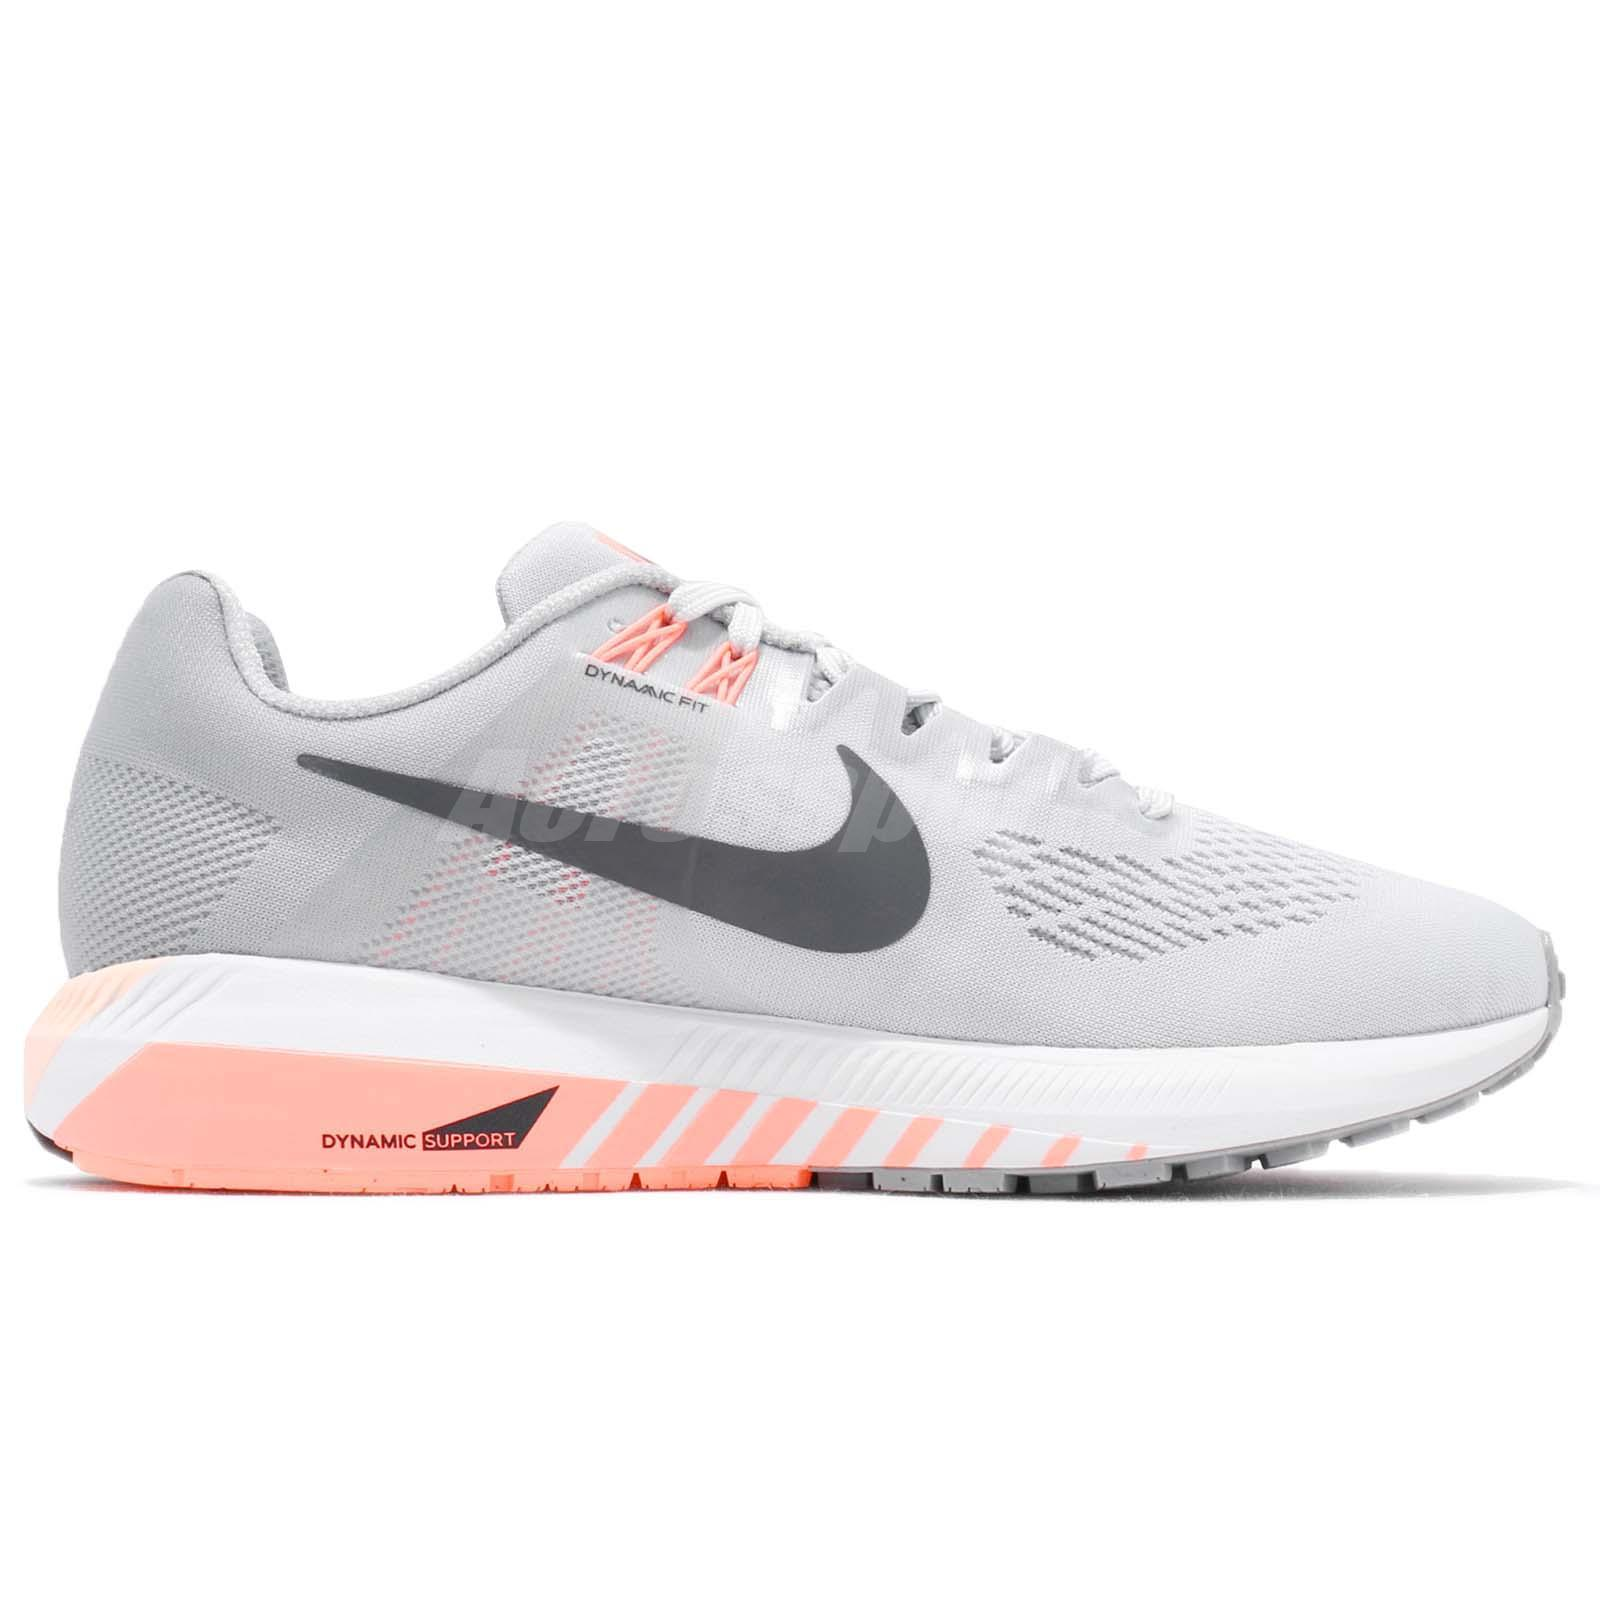 Details about Nike Wmns Air Zoom Structure 21 Wolf Grey Women Running Shoes Sneaker 904701 008